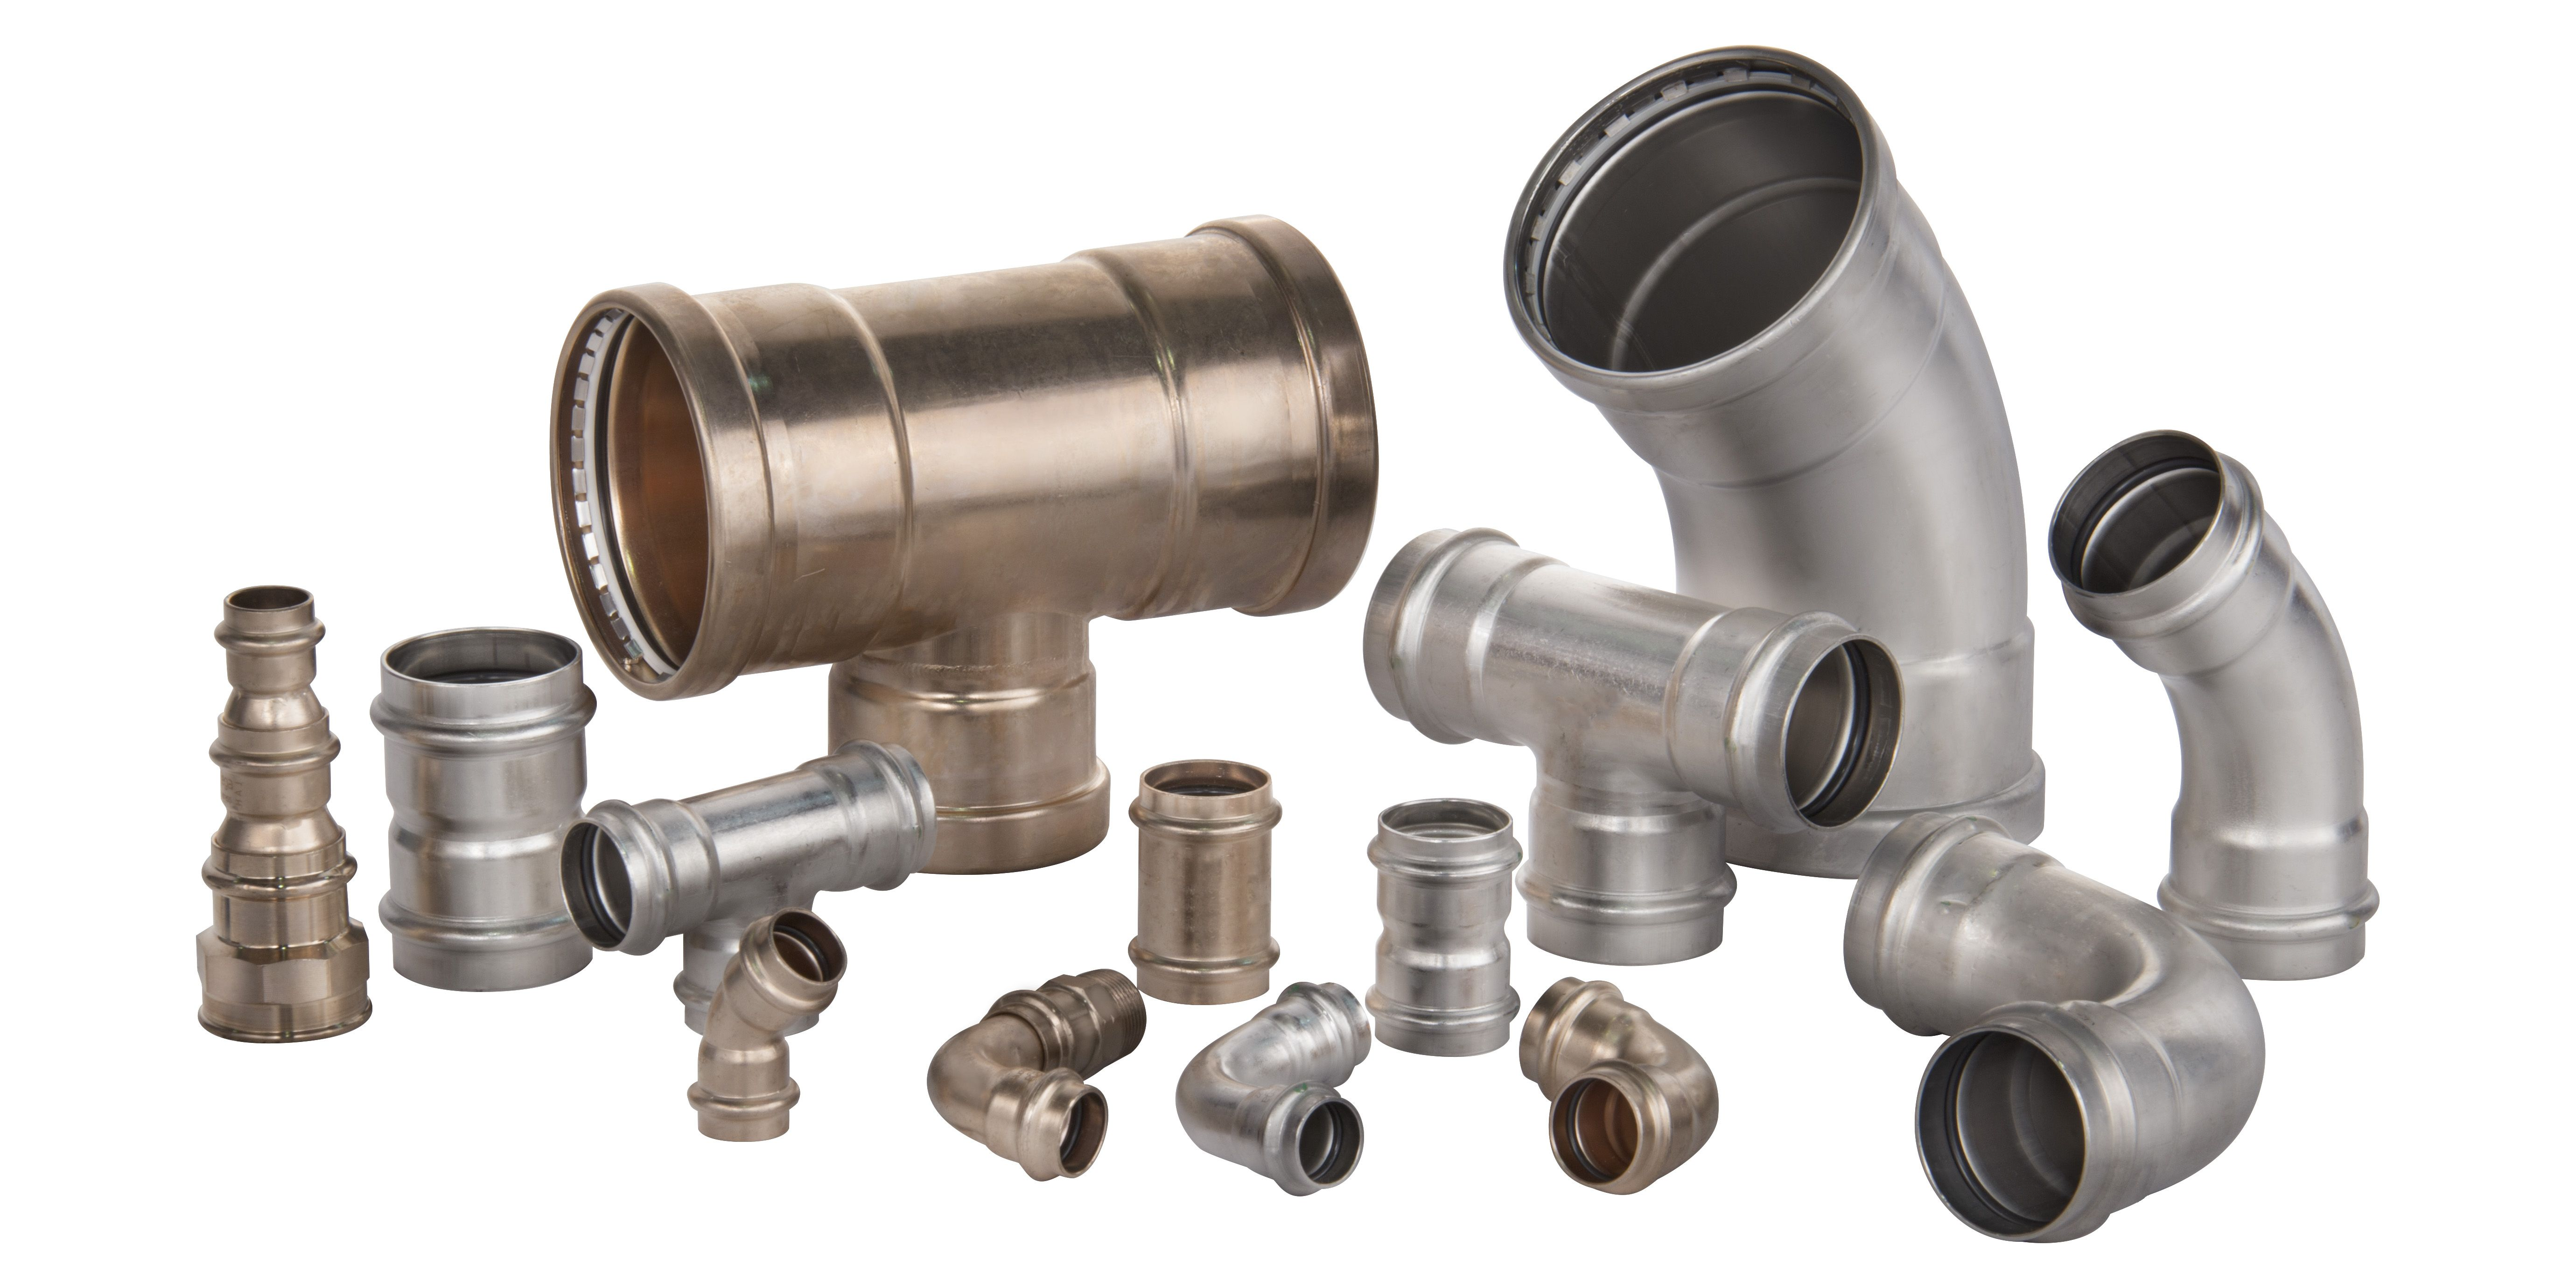 World Wide Metric Offers Viega Press Fittings In Copper Nickel Bronze Stainless Steel And Copper Materials Copper Material Bronze Fittings